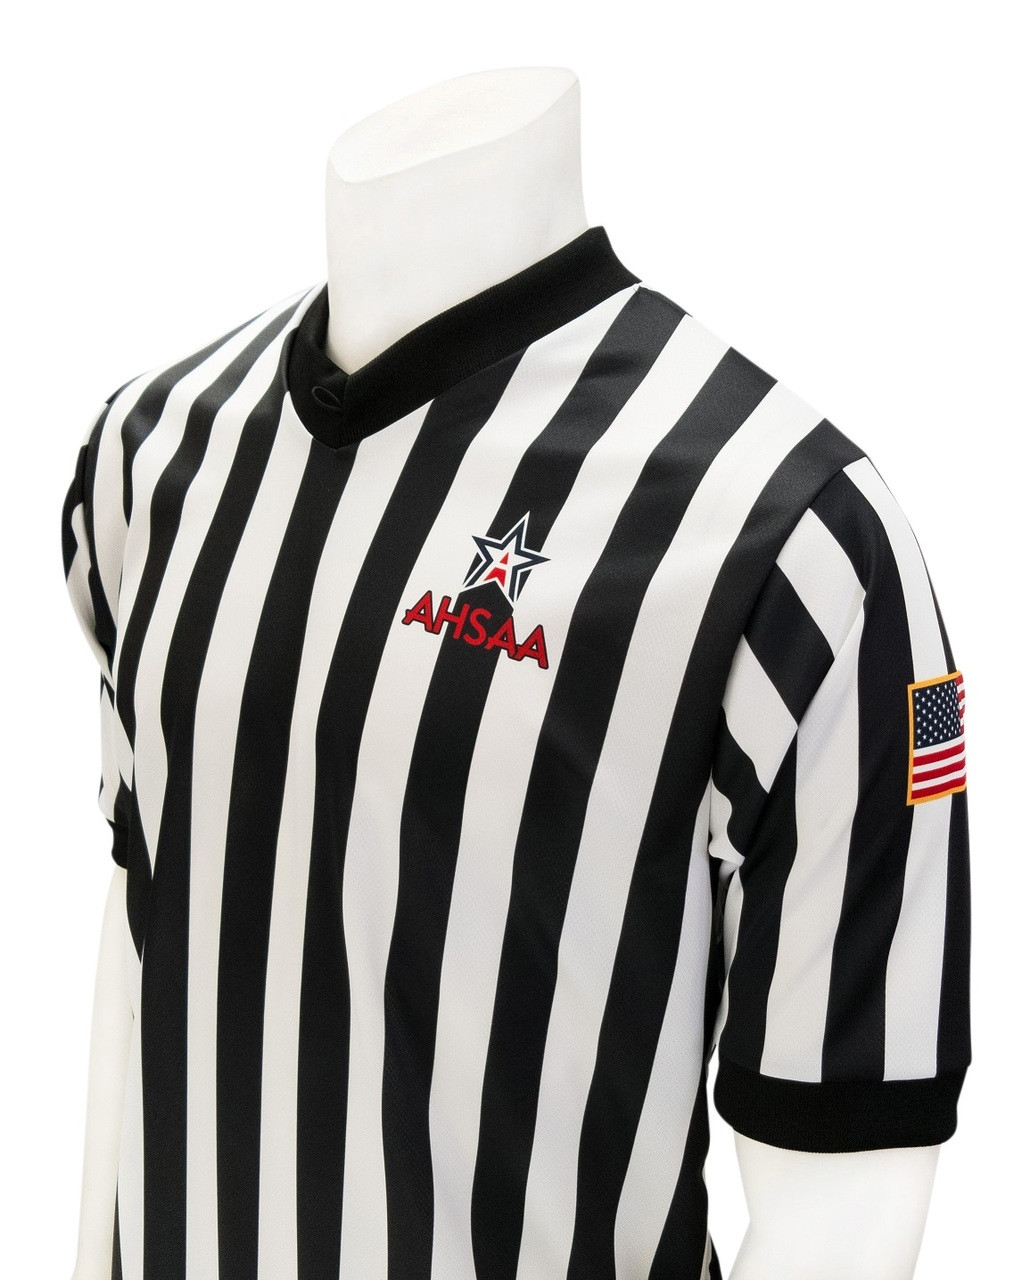 Alabama AHSAA Body Flex® Men's Basketball Referee Shirt